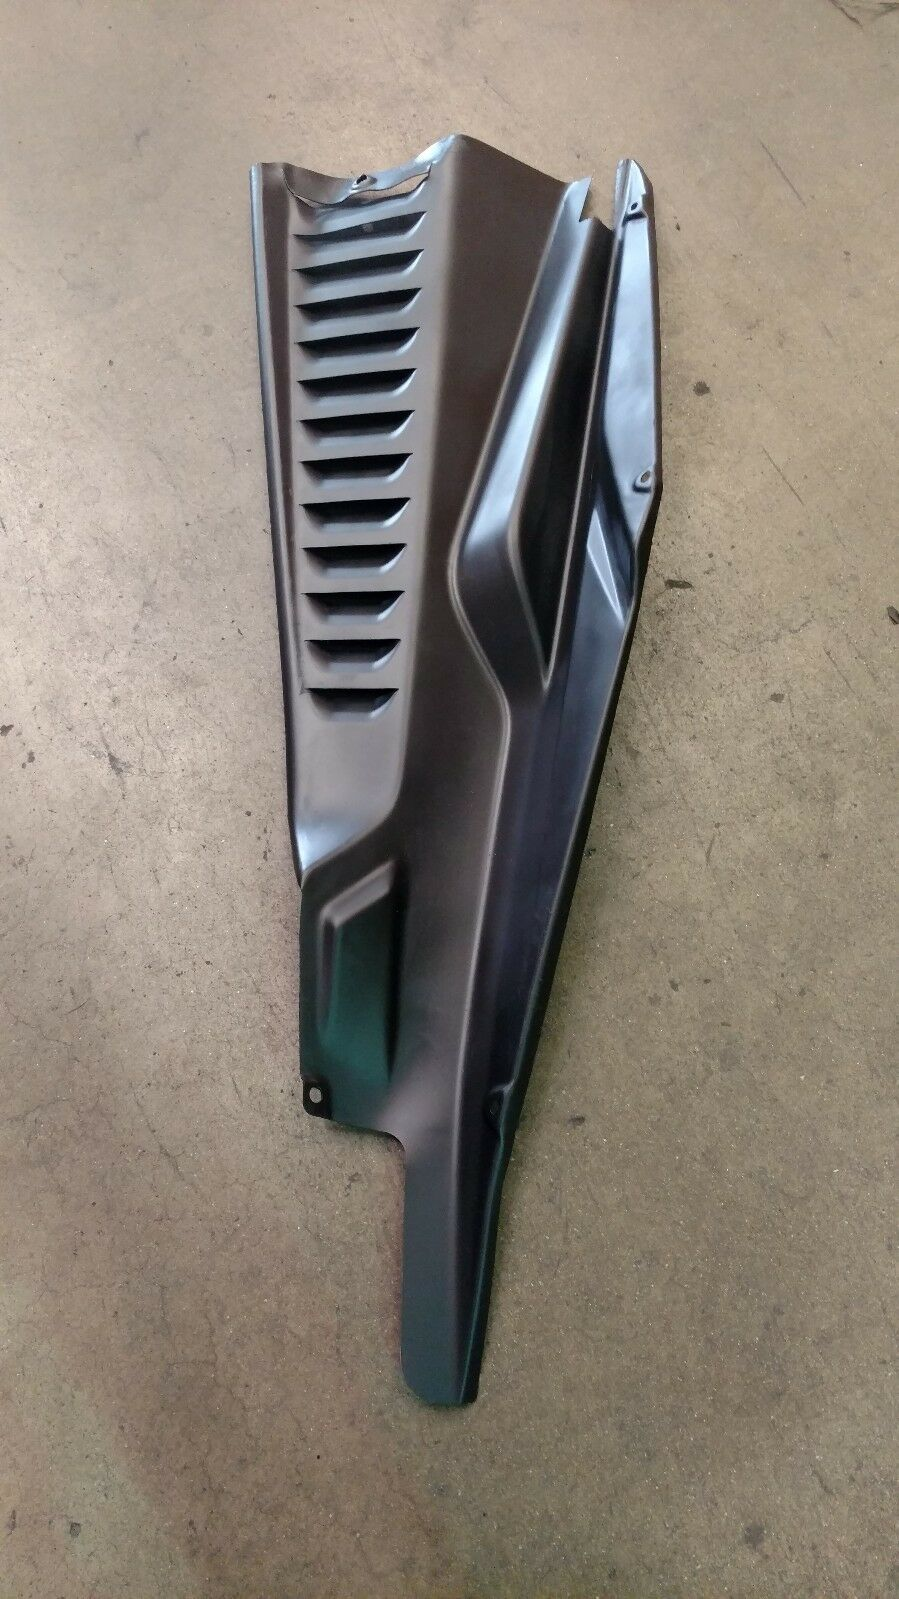 FERRARI 458 ITALIA REAR LEFT DRIVER SIDE ENGINE BAY COVER PANEL OEM 82904900